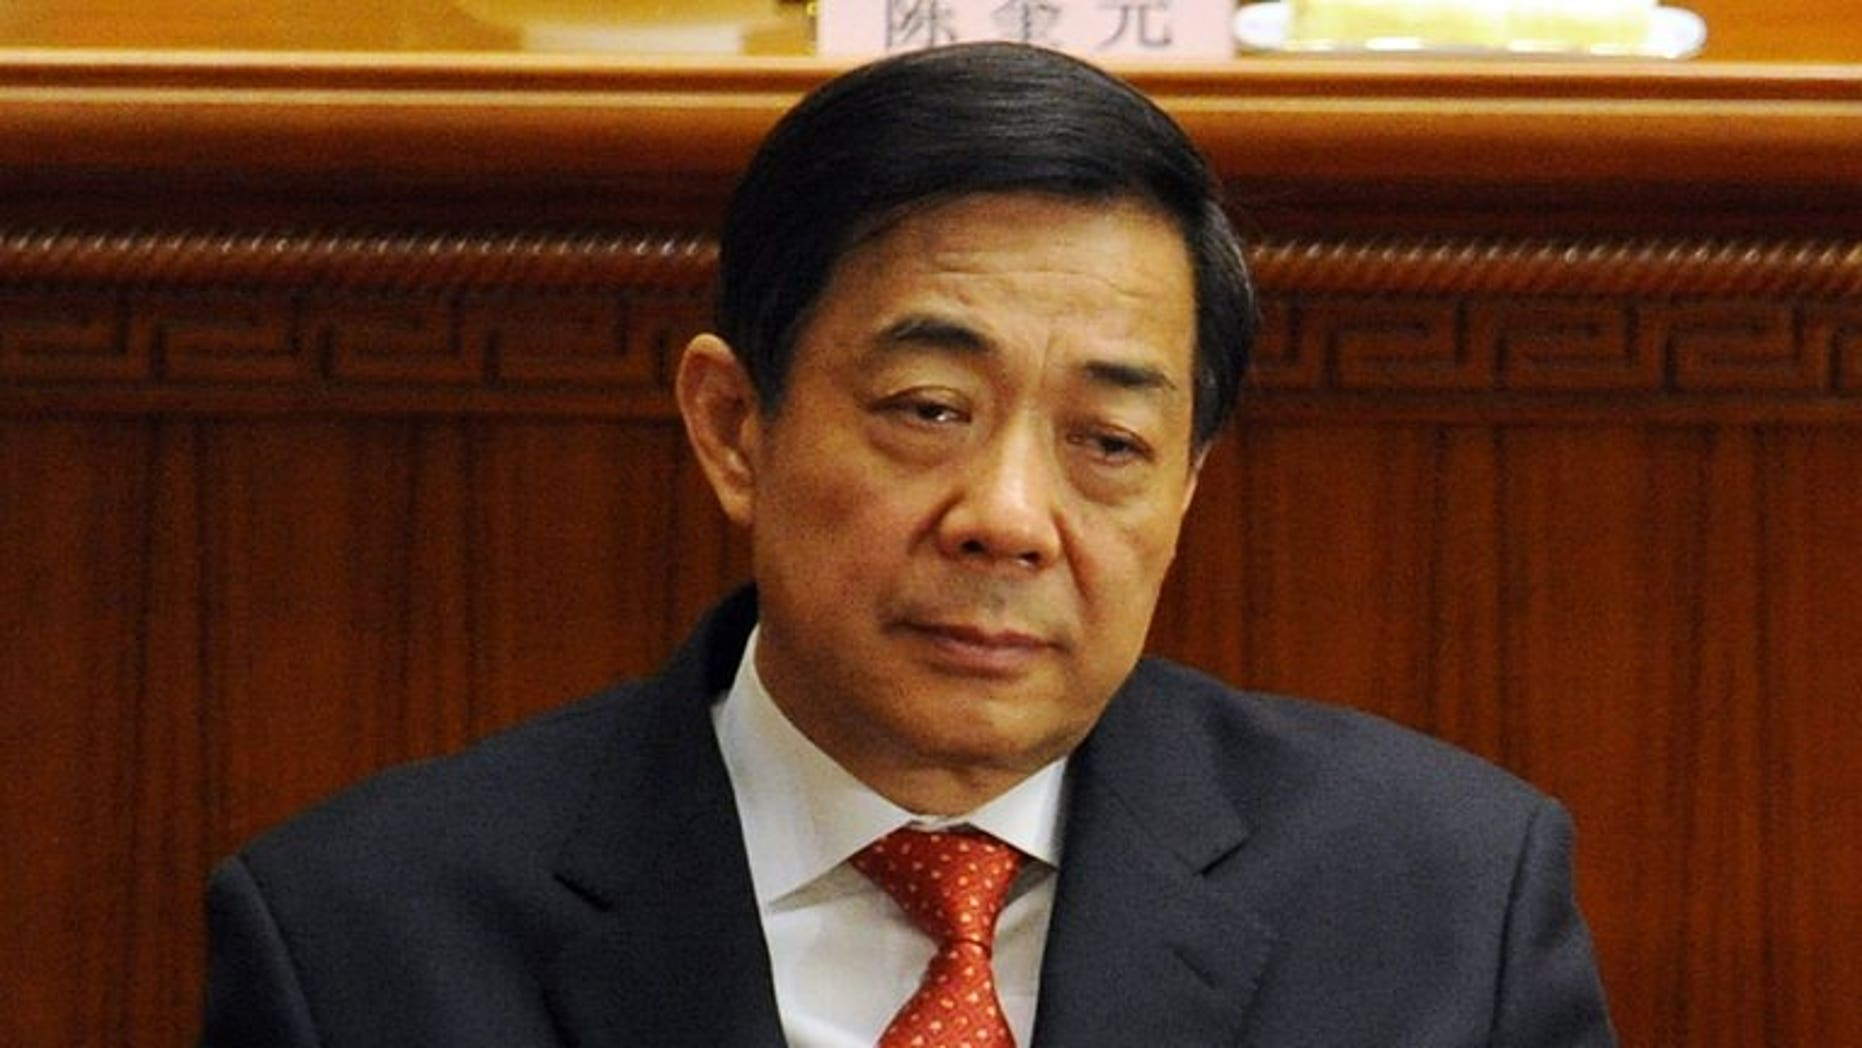 Former Chongqing Party Secretary Bo Xilai during the closing ceremony of the National People's Congress on March 14, 2012. His son Bo Guagua has broken his months-long silence ahead of his father's trial.